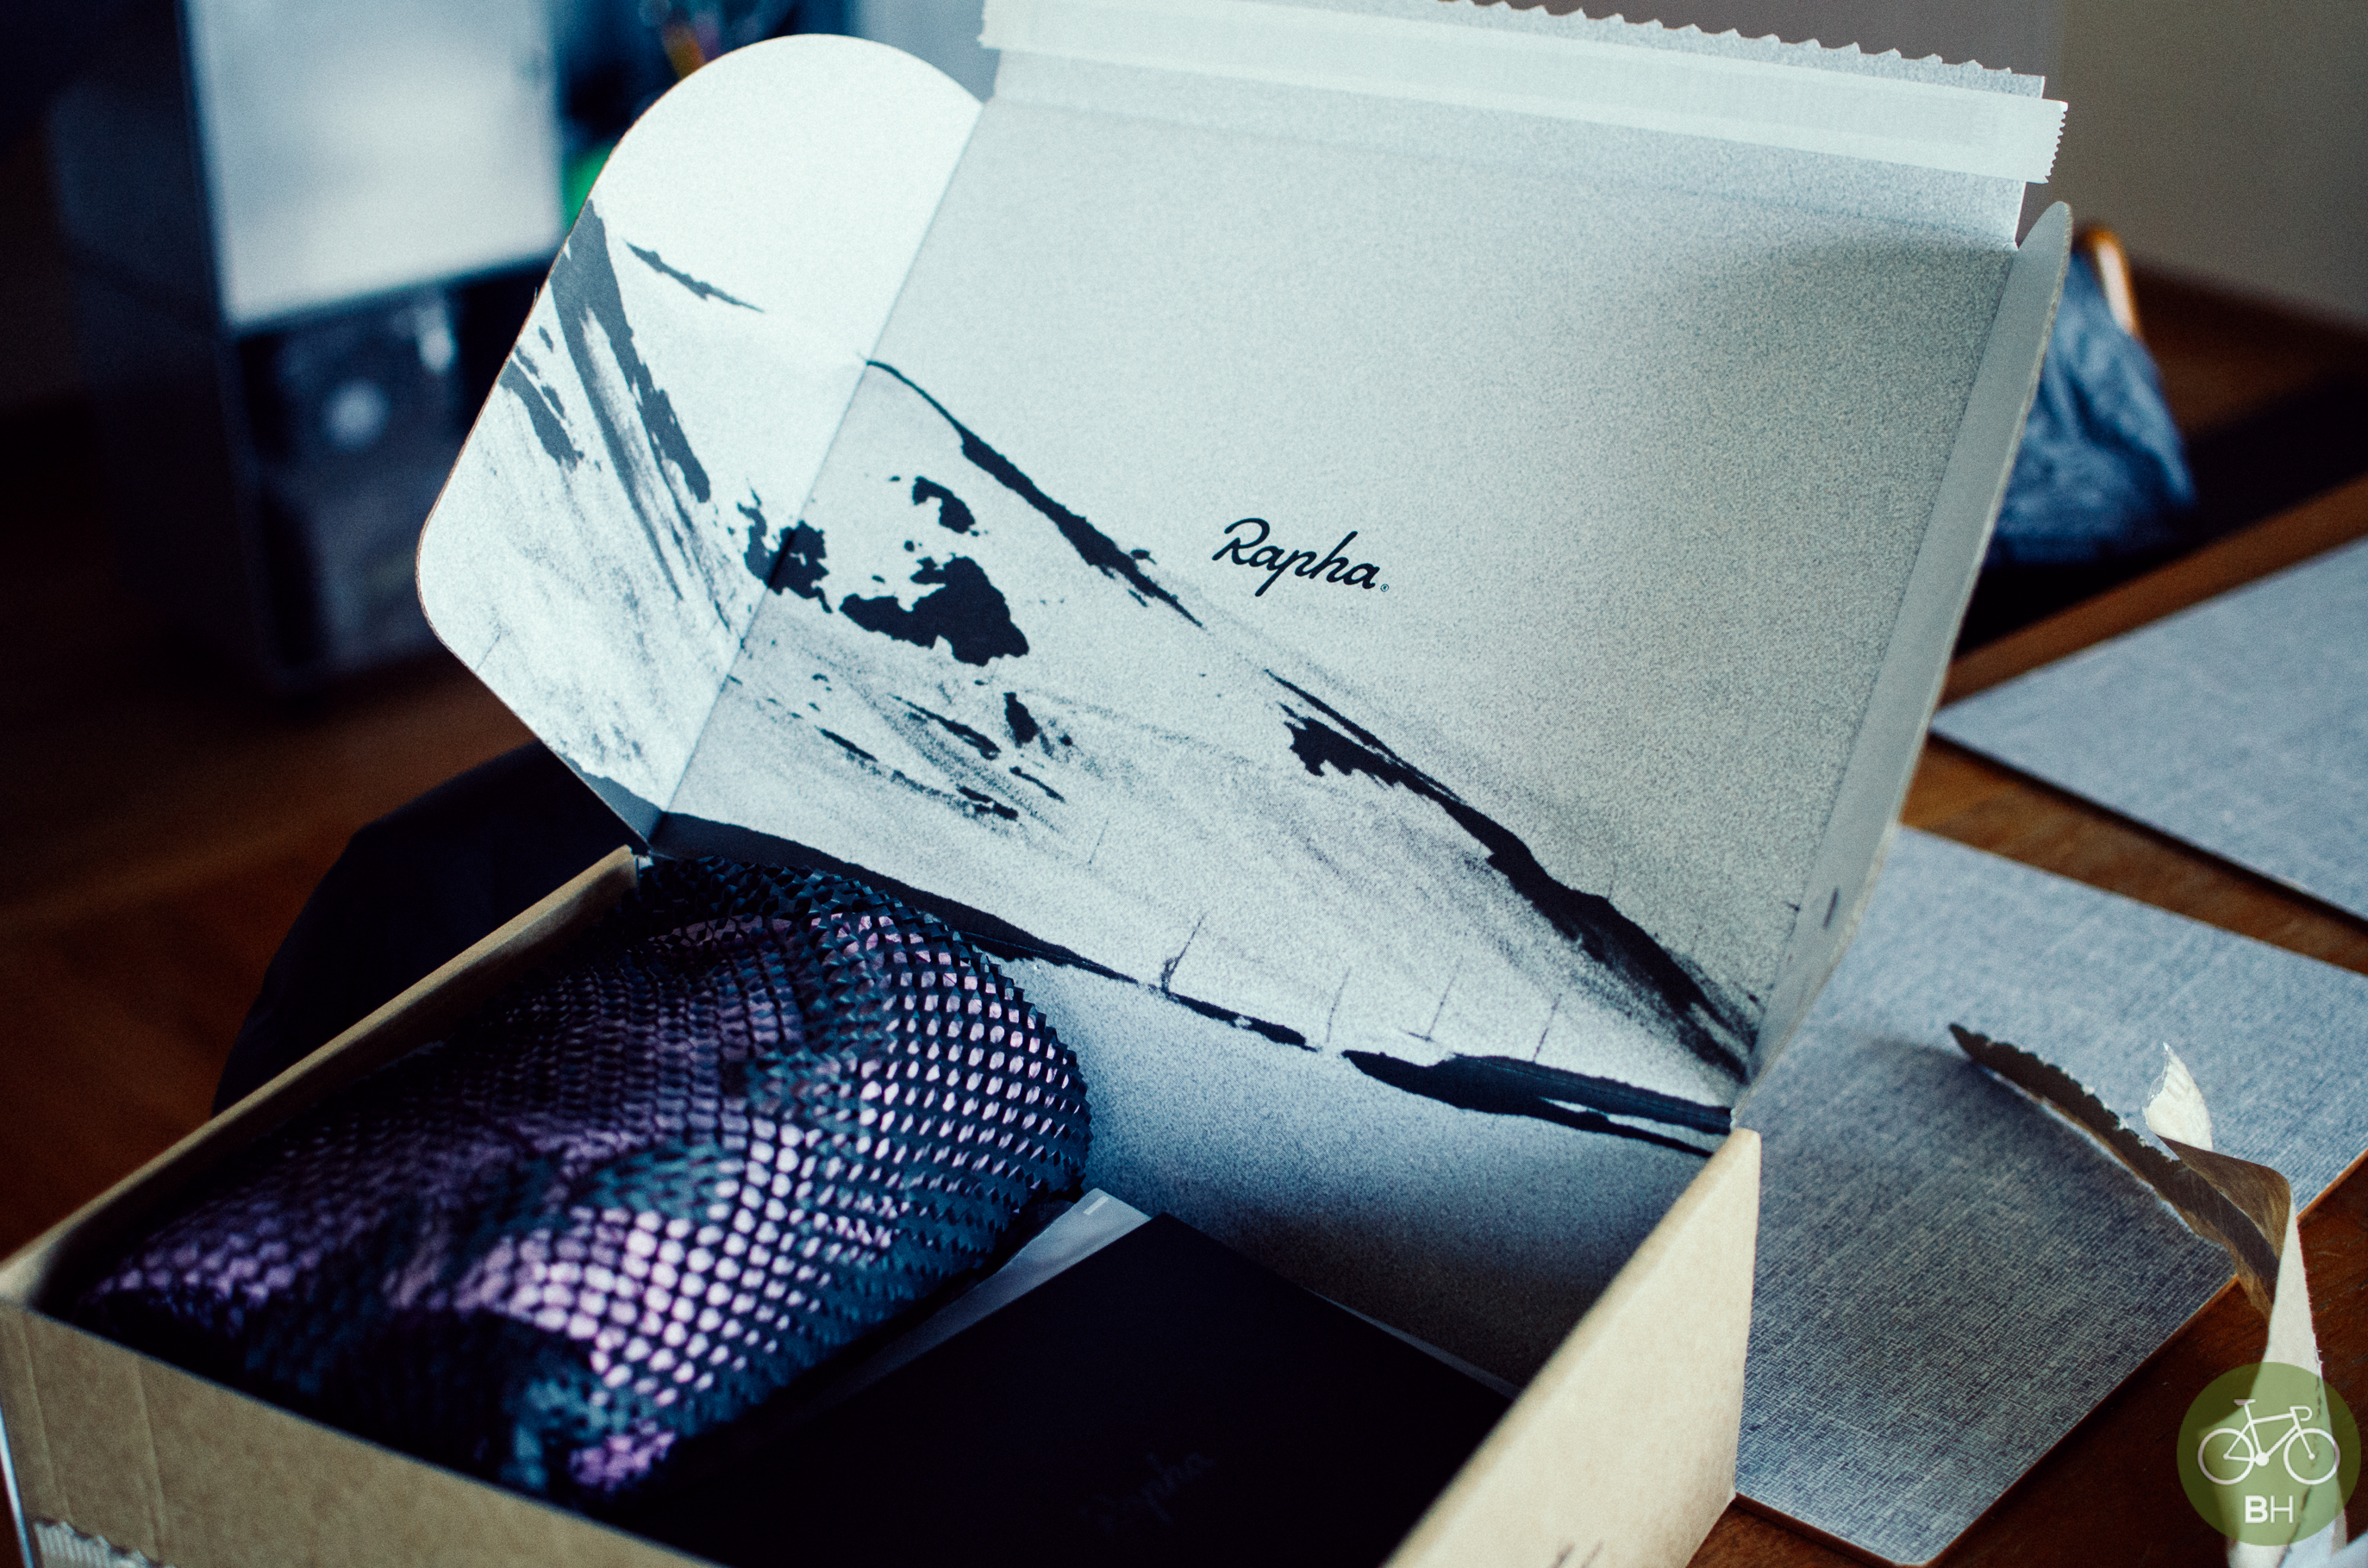 Rapha box 2